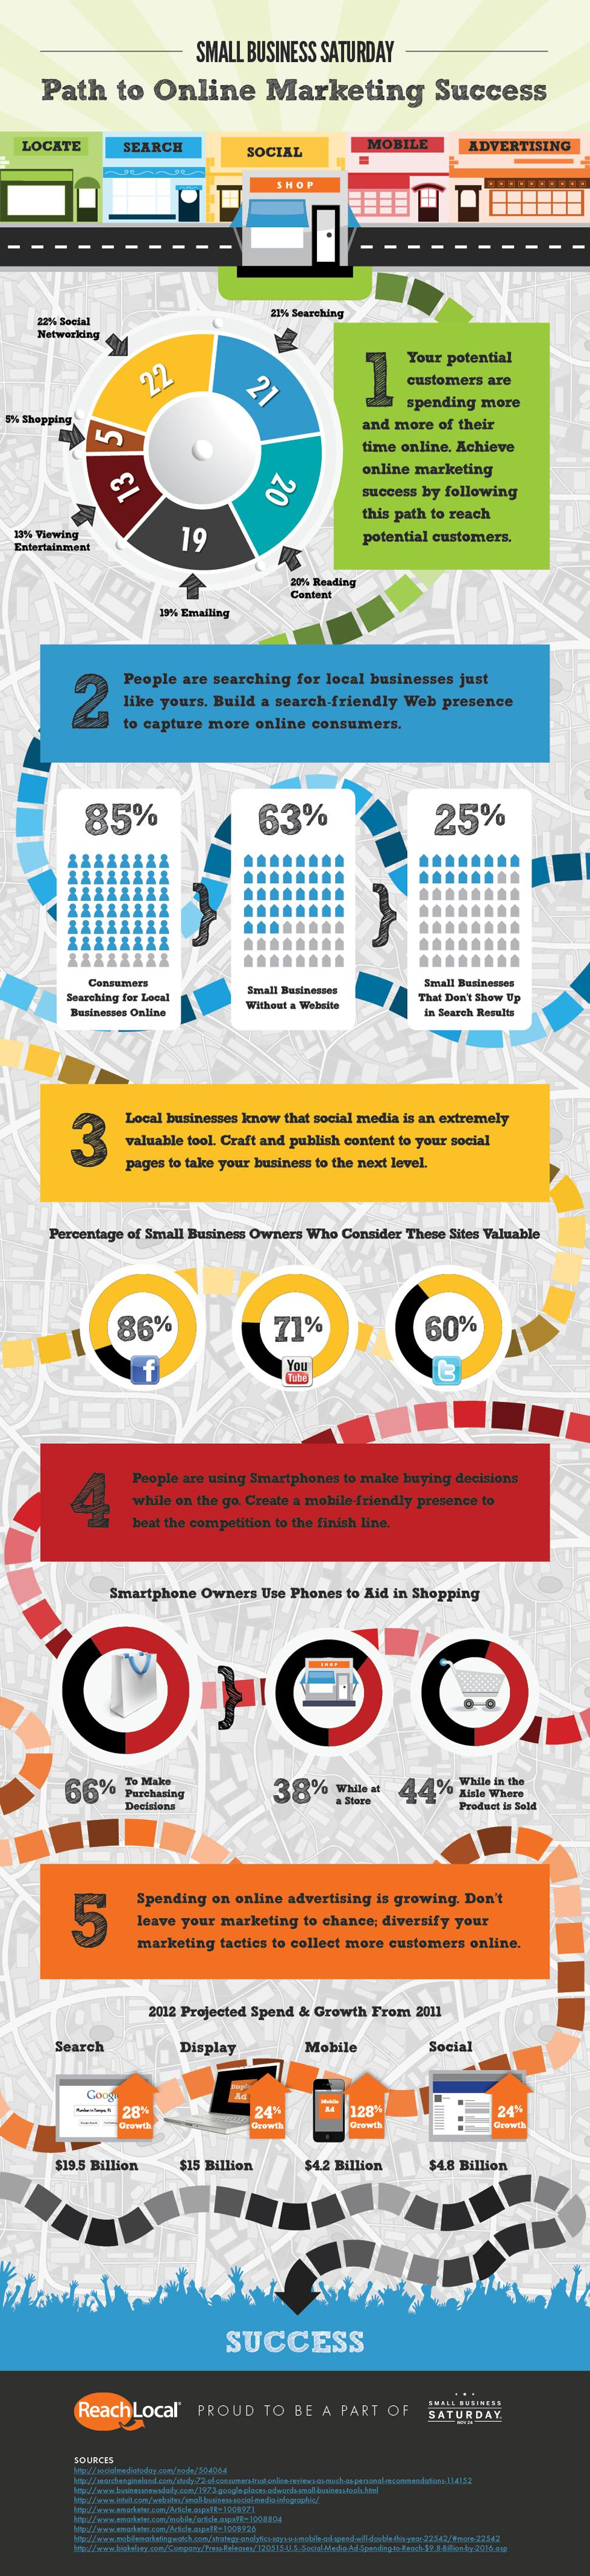 Path To Online Marketing Success (Infographic)